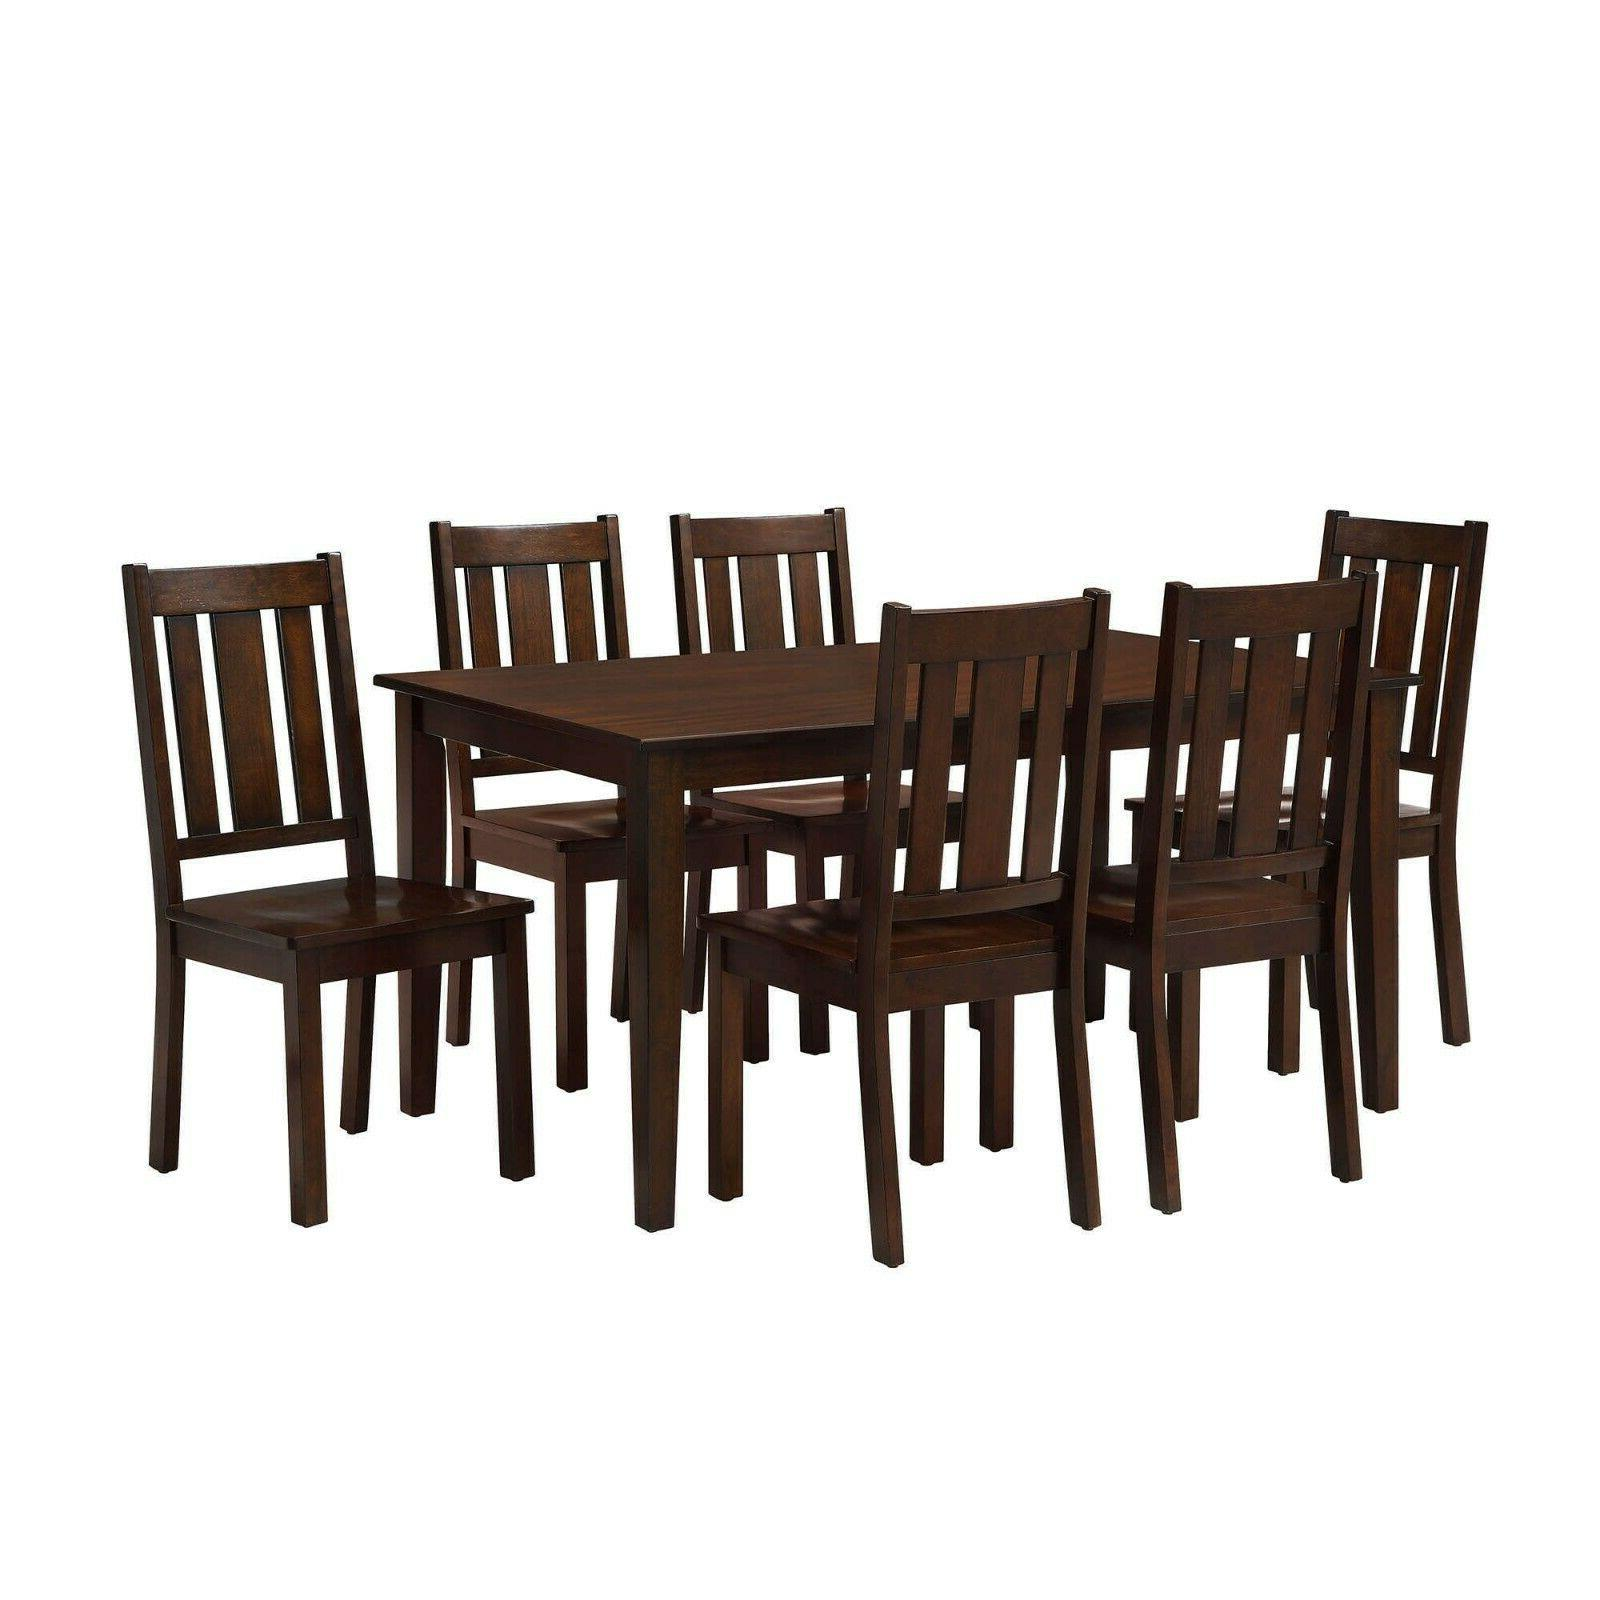 Dining Room Table Wooden Kitchen Tables Chairs Sets 7 Piece